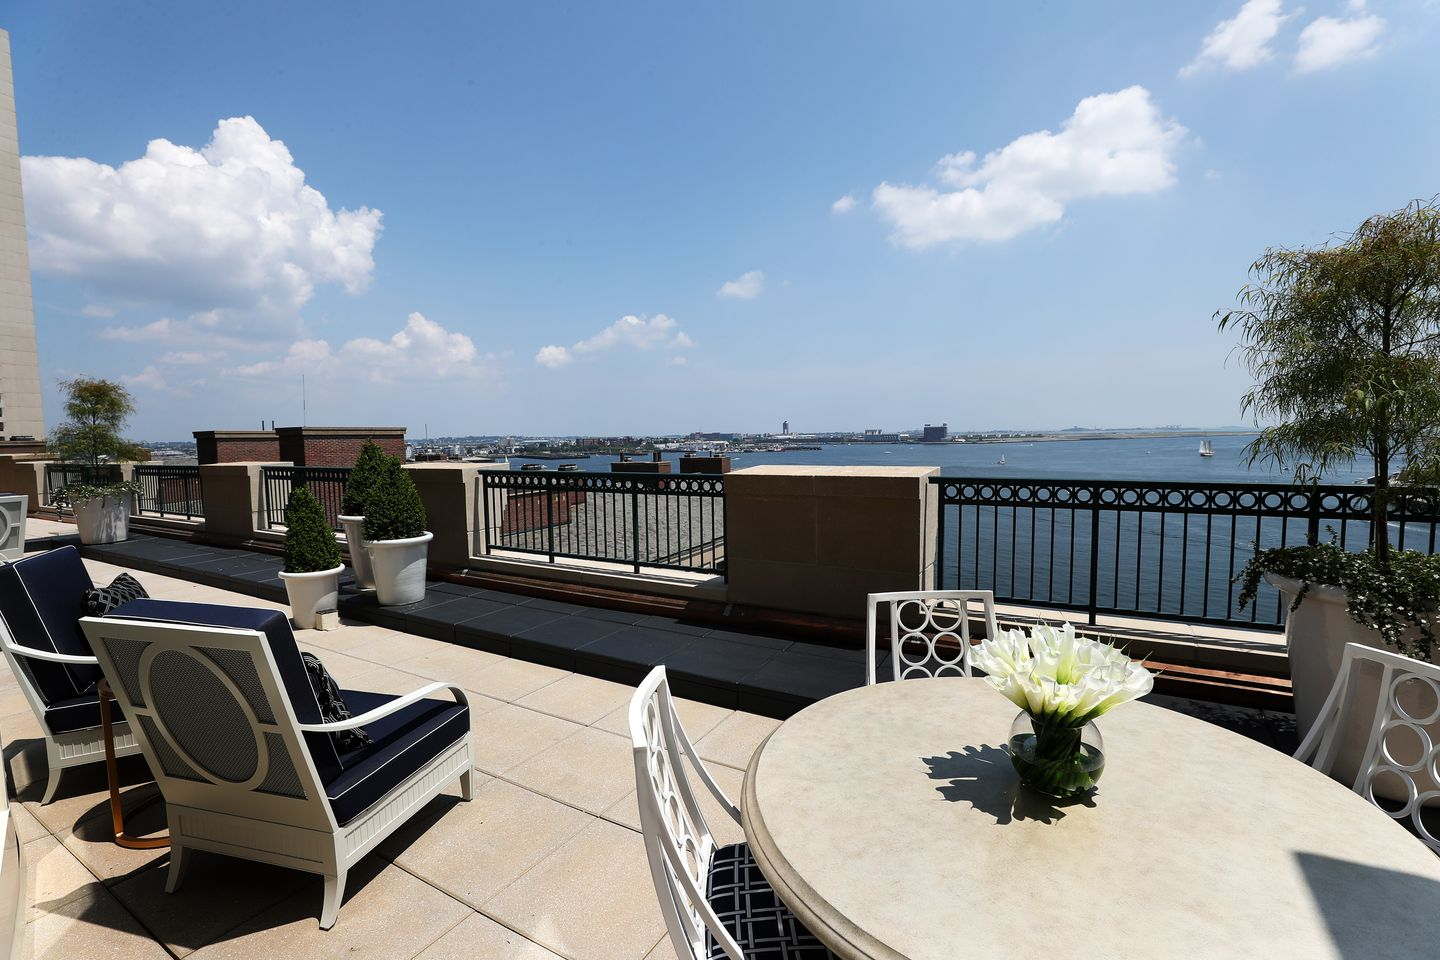 The terrace and view of Boston Harbor.